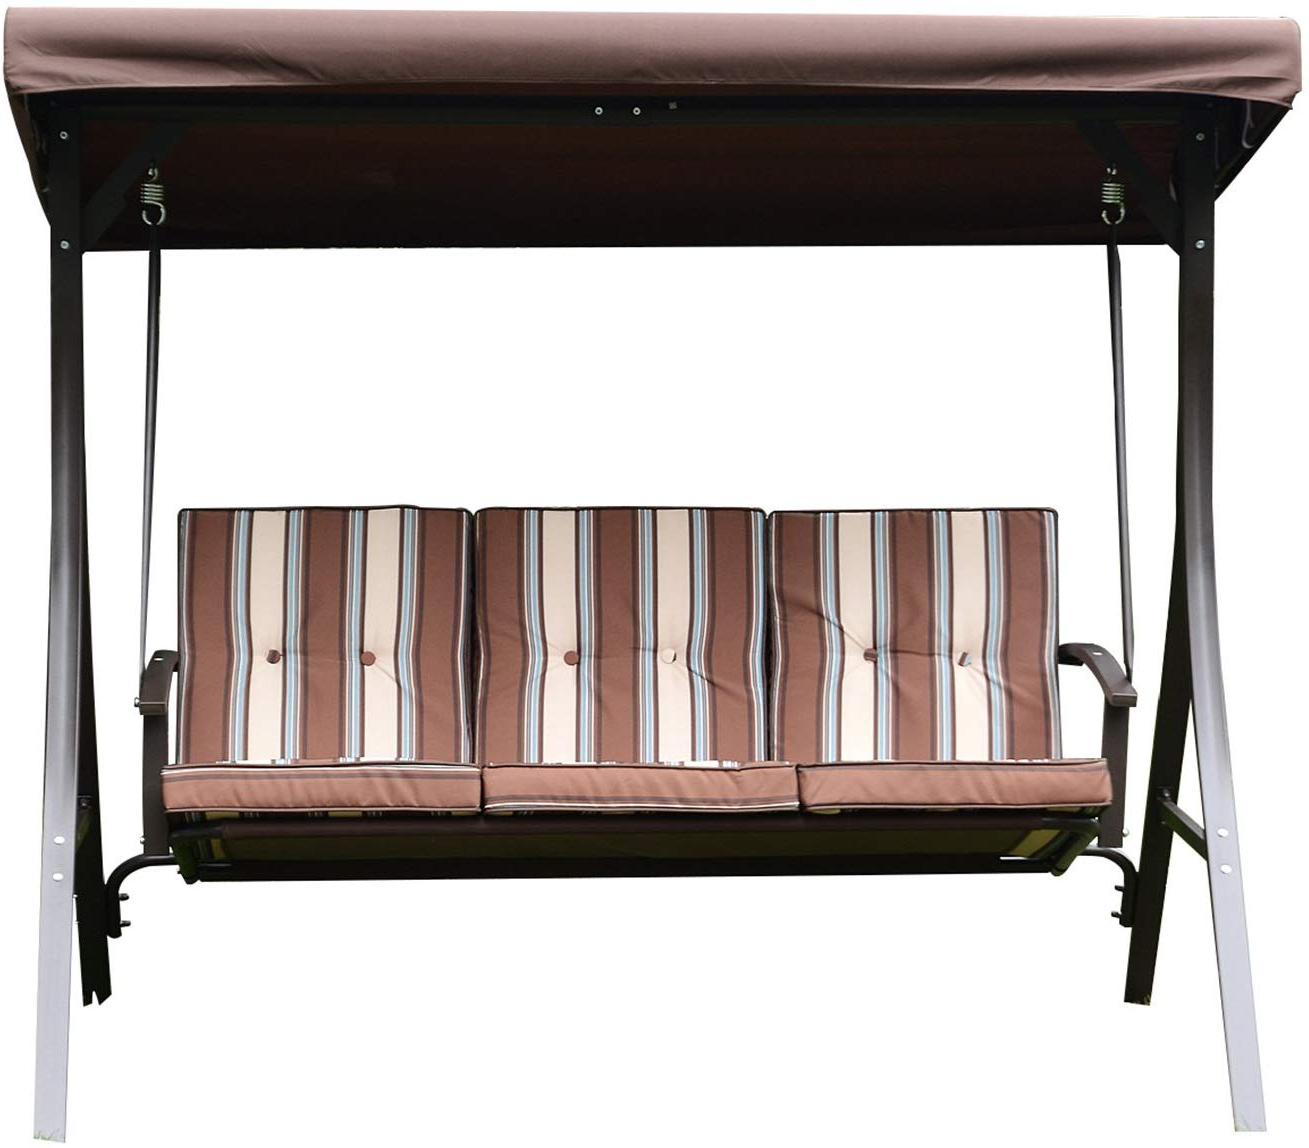 Most Up To Date Bestmart Inc Outdoor 3 Person Canopy Swing Glider Hammock Chair Patio Backyard Love Seat Beach Porch Furniture (brown Beige Stripes) With Regard To 2 Person Outdoor Convertible Canopy Swing Gliders With Removable Cushions Beige (Gallery 23 of 30)